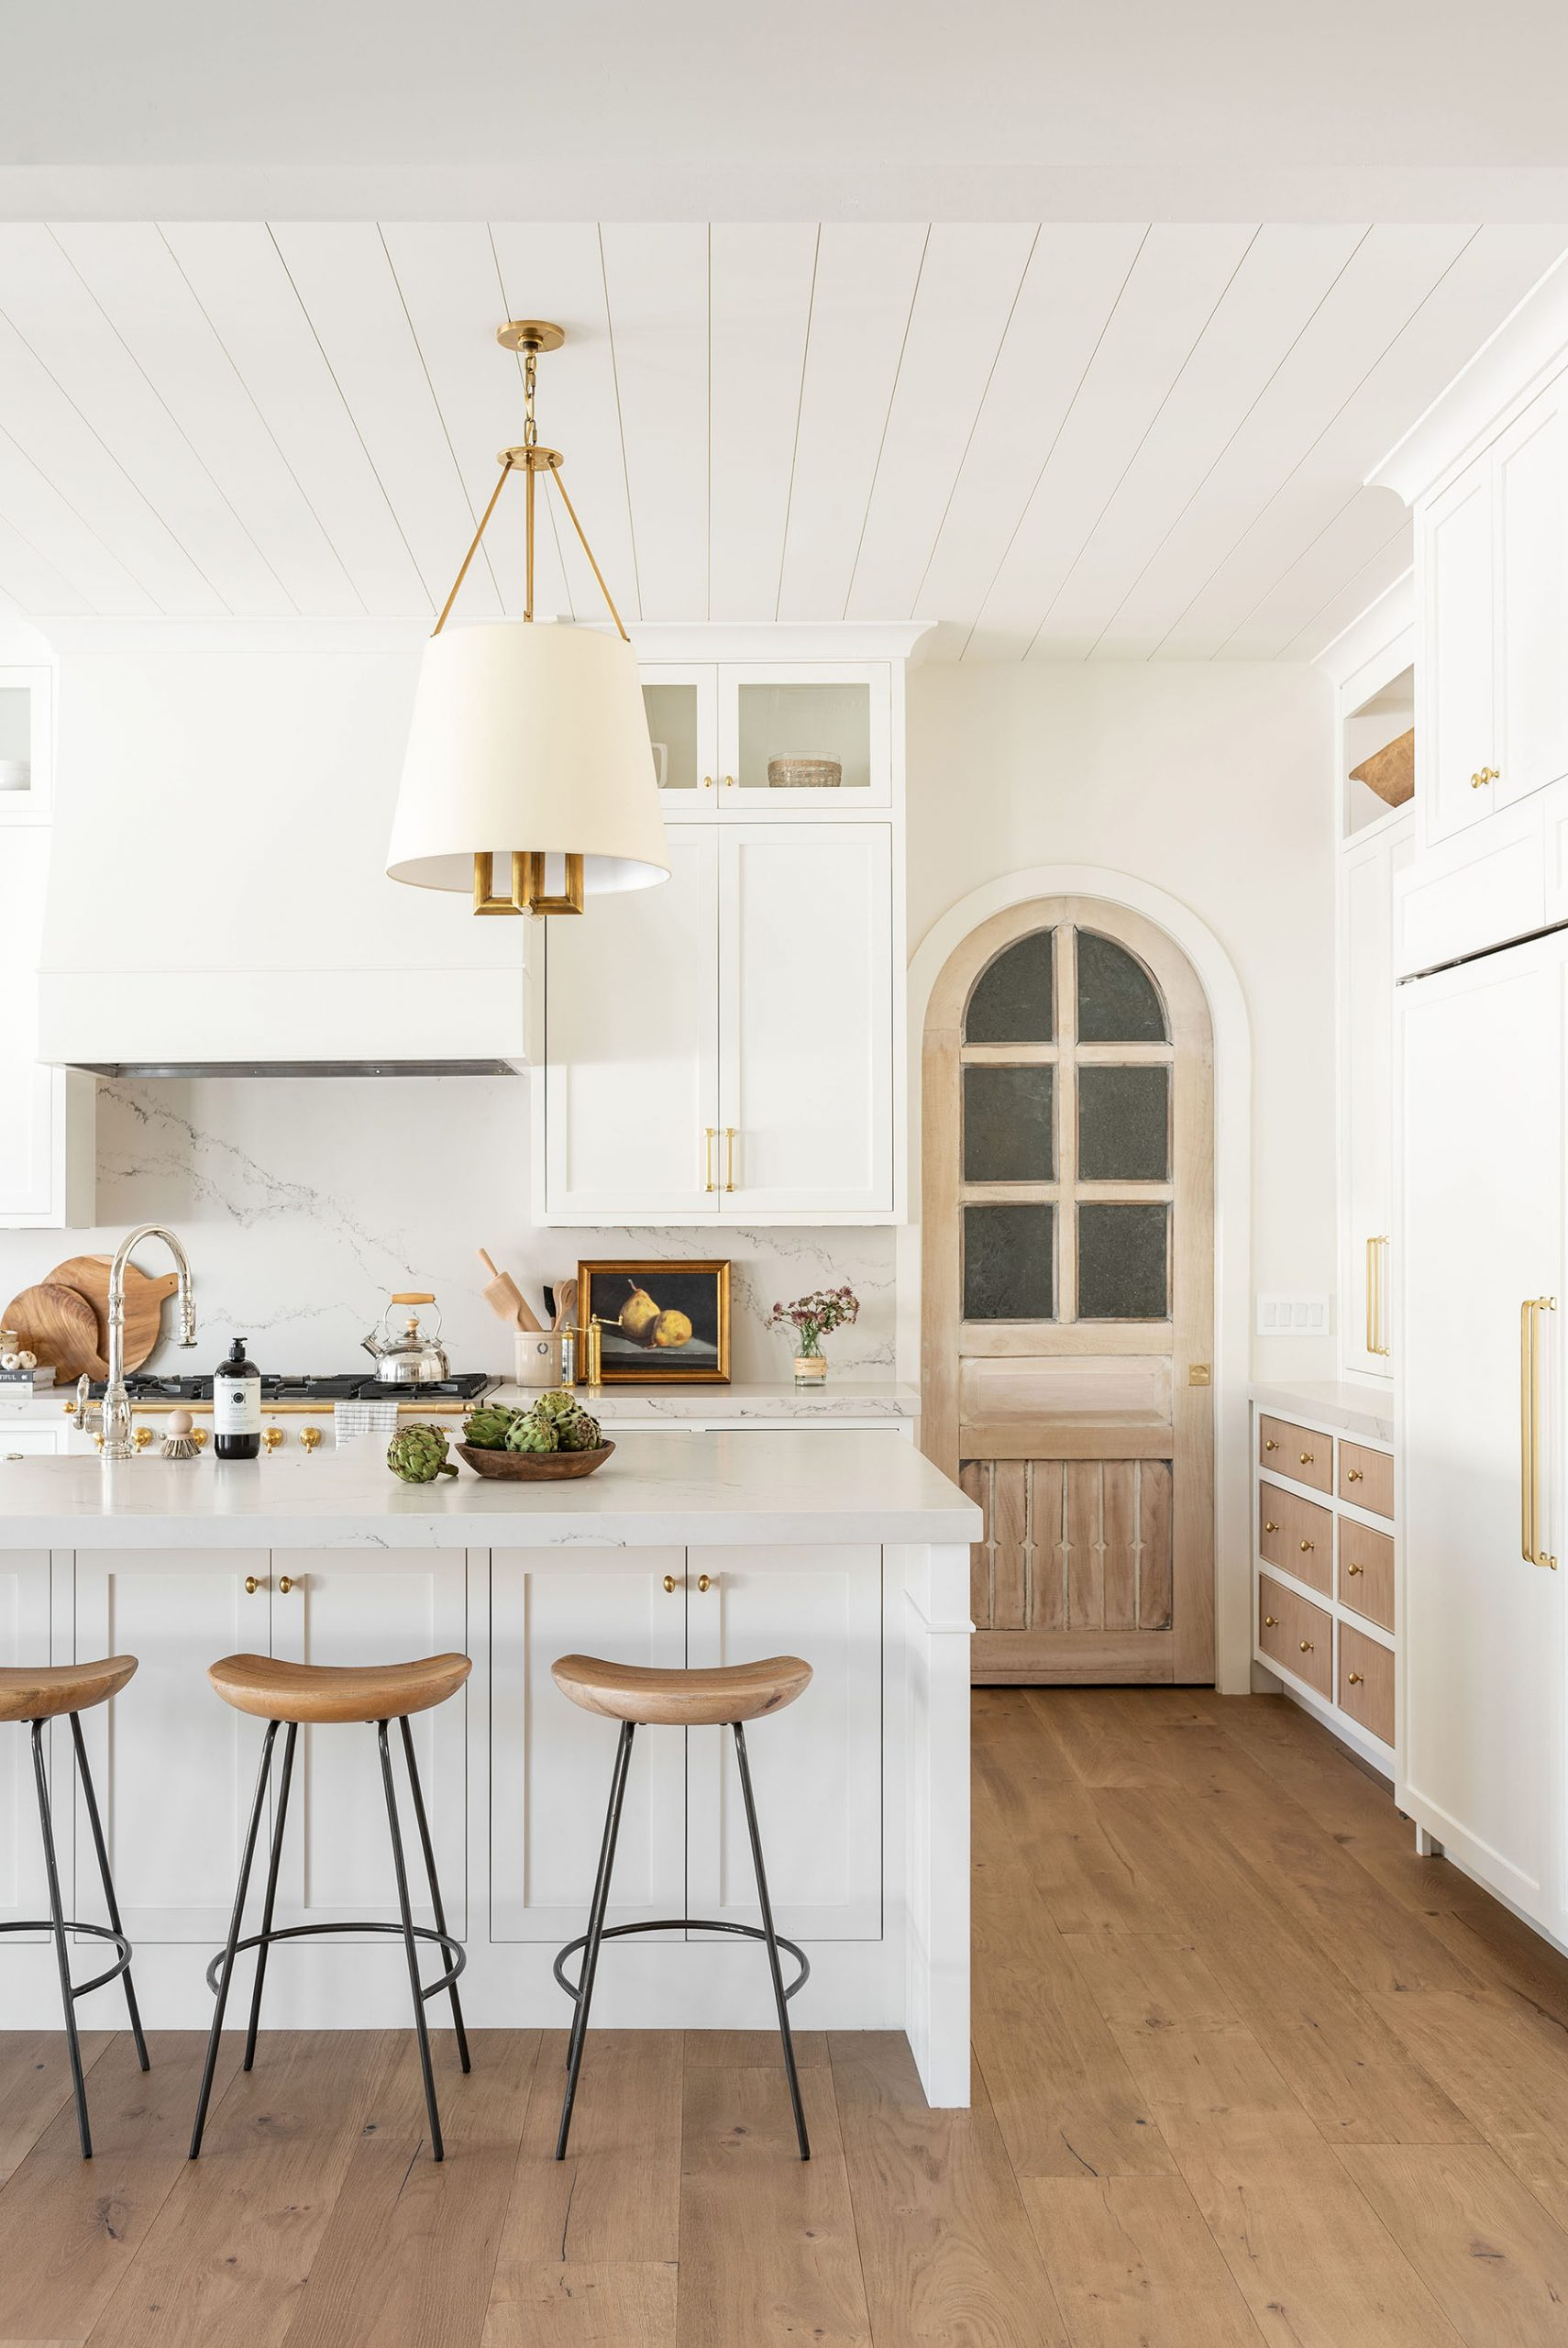 AZ Homestead Project: The Kitchen & Primary Suite